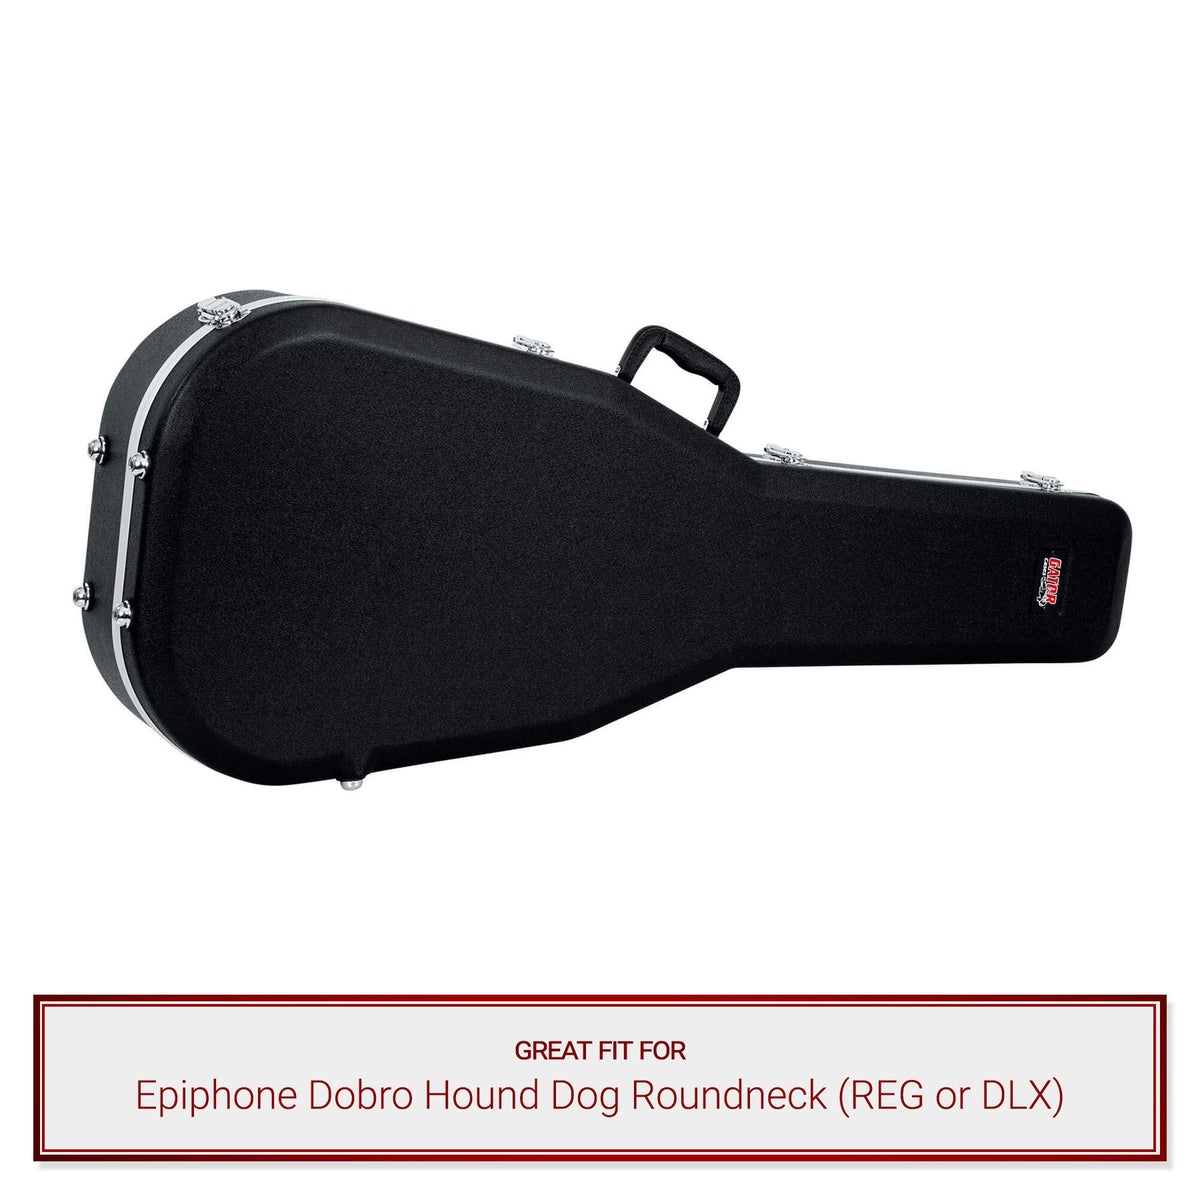 Gator Classical Guitar Case fits Epiphone Dobro Hound Dog Roundneck (REG or DLX)